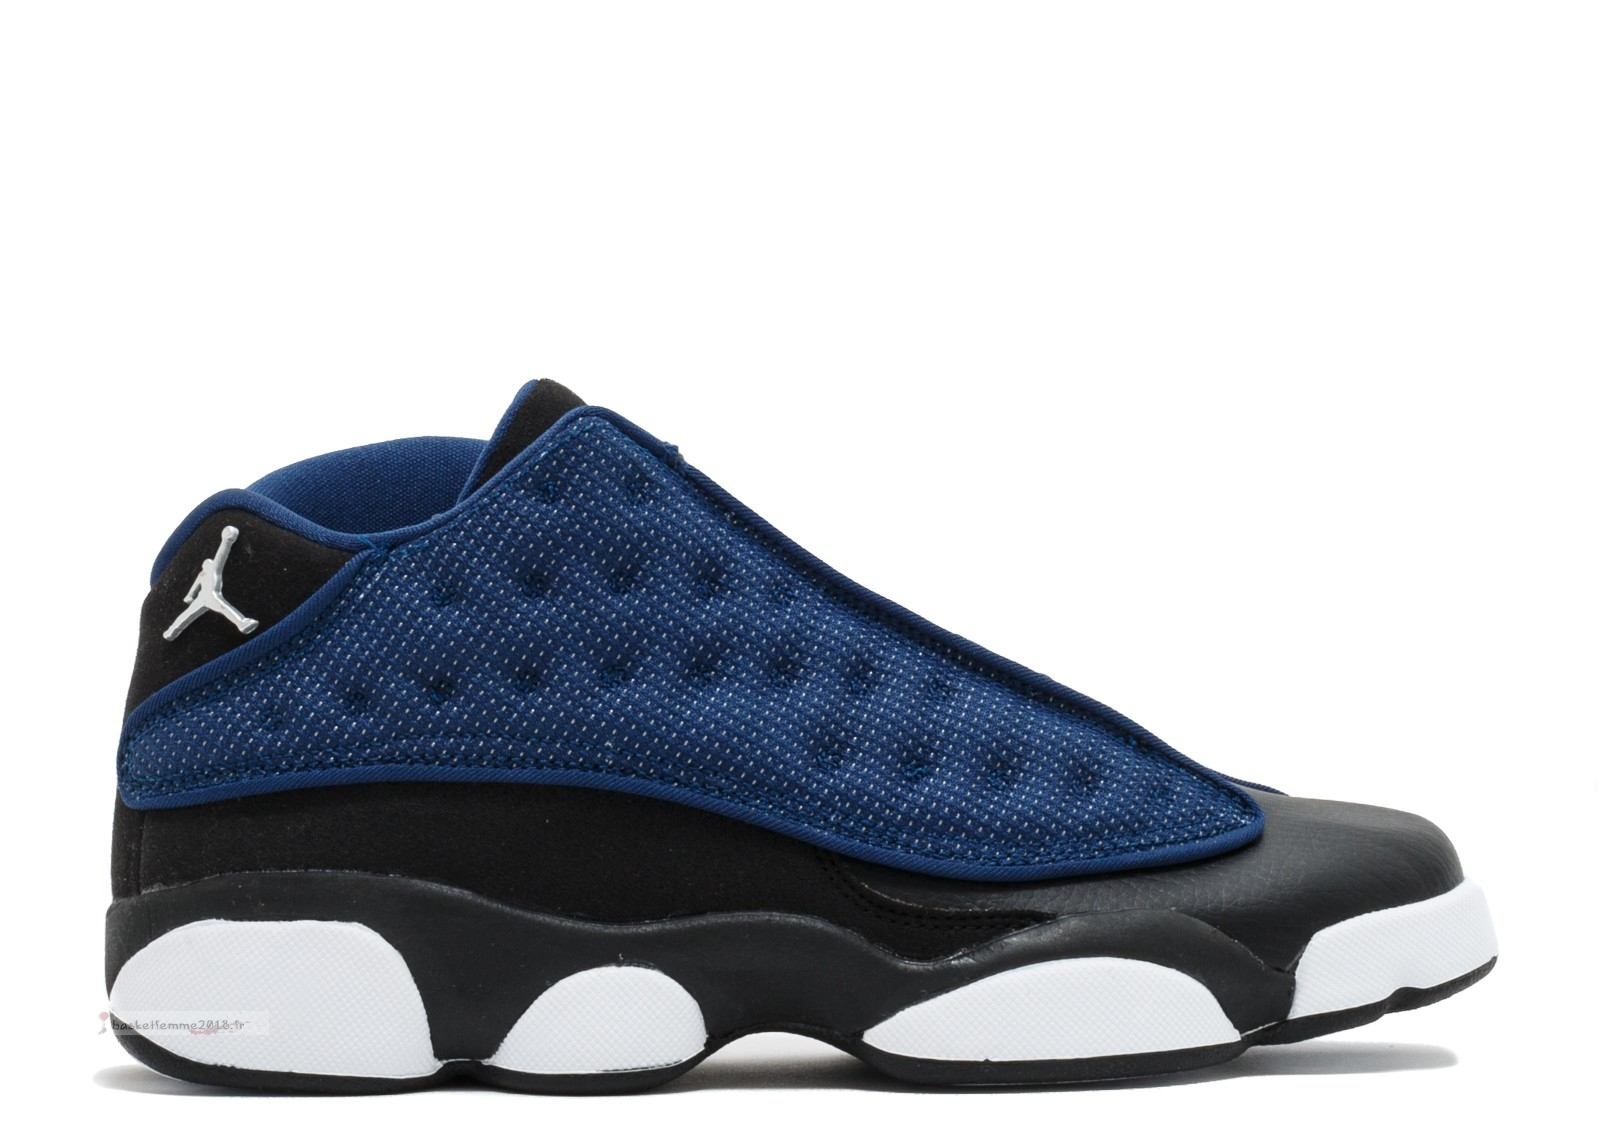 Air Jordan 13 Retro Low (Gs) Bleu (310811-407) Chaussure de Basket